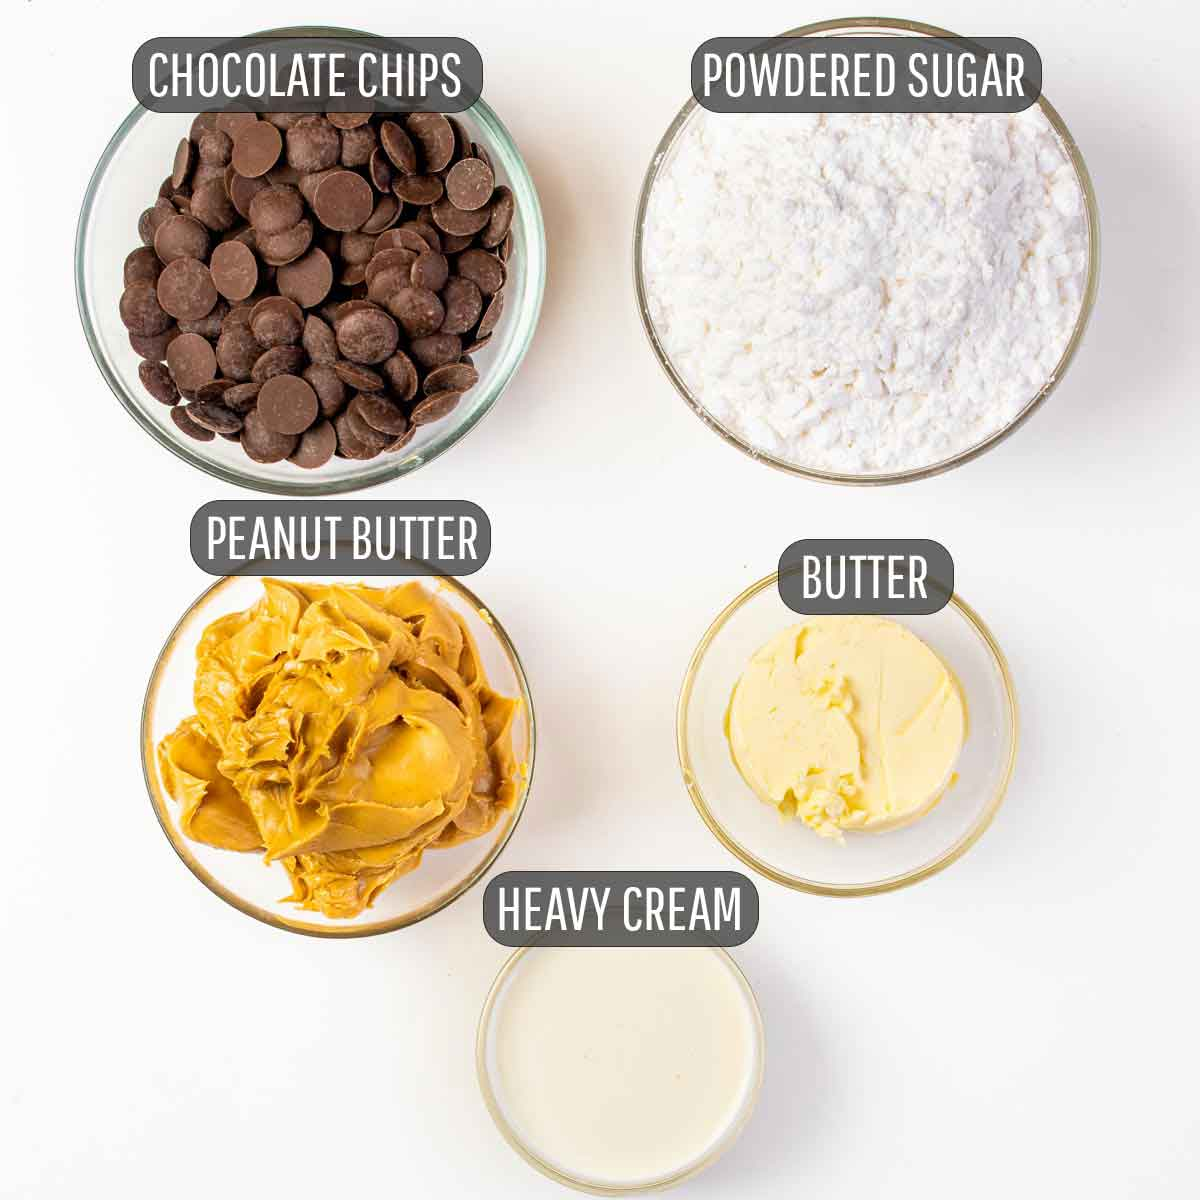 ingredients needed for the peanut butter and chocolate layer for peanut butter brownies.